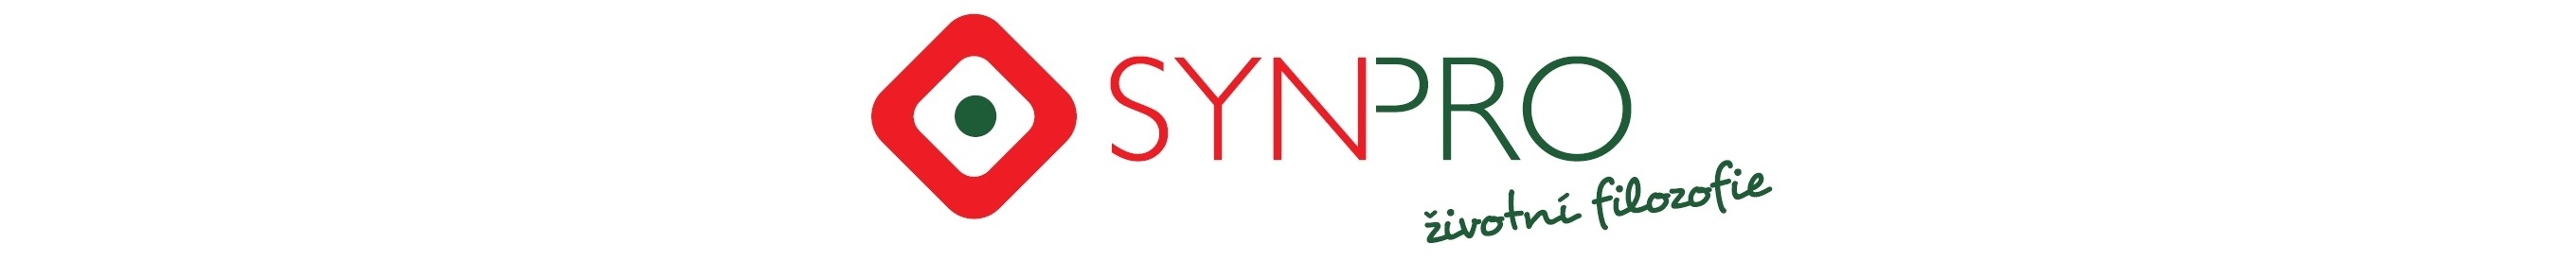 SYNPRO, s.r.o.